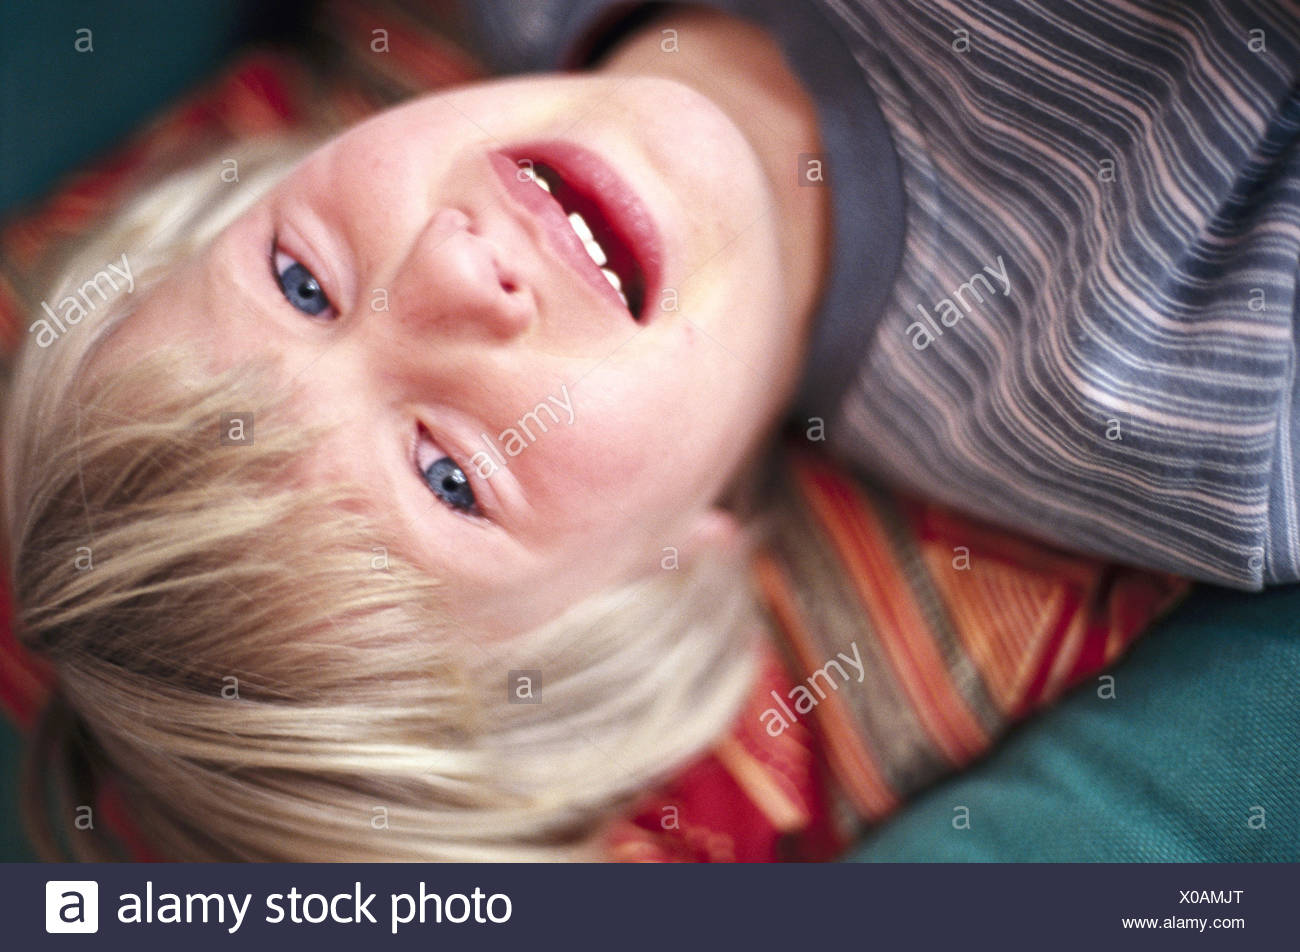 Girls, 6-10 years, blond, sit, lean back, cry, portrait, child, sadly, tooth gap, desperation, loneliness, pain, emotion, feeling, expression, tears, unhappily, tearful, anxiously, fear, ailment, suffer, facial play, helplessness, discontent, mood negatively, inside - Stock Image